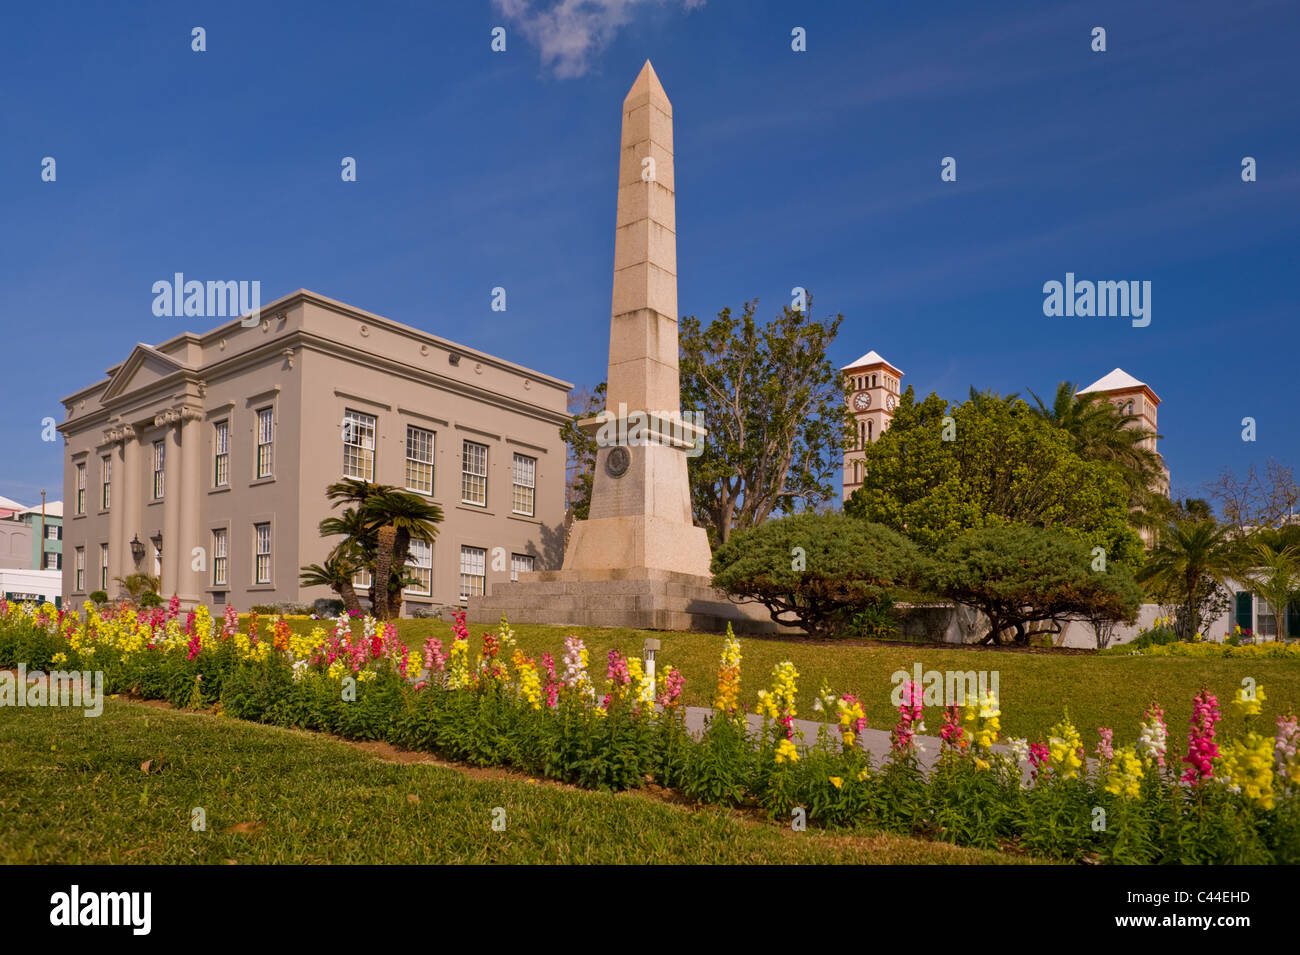 The Cenotaph and Cabinet Building with the Sessions House in background, Hamilton. - Stock Image